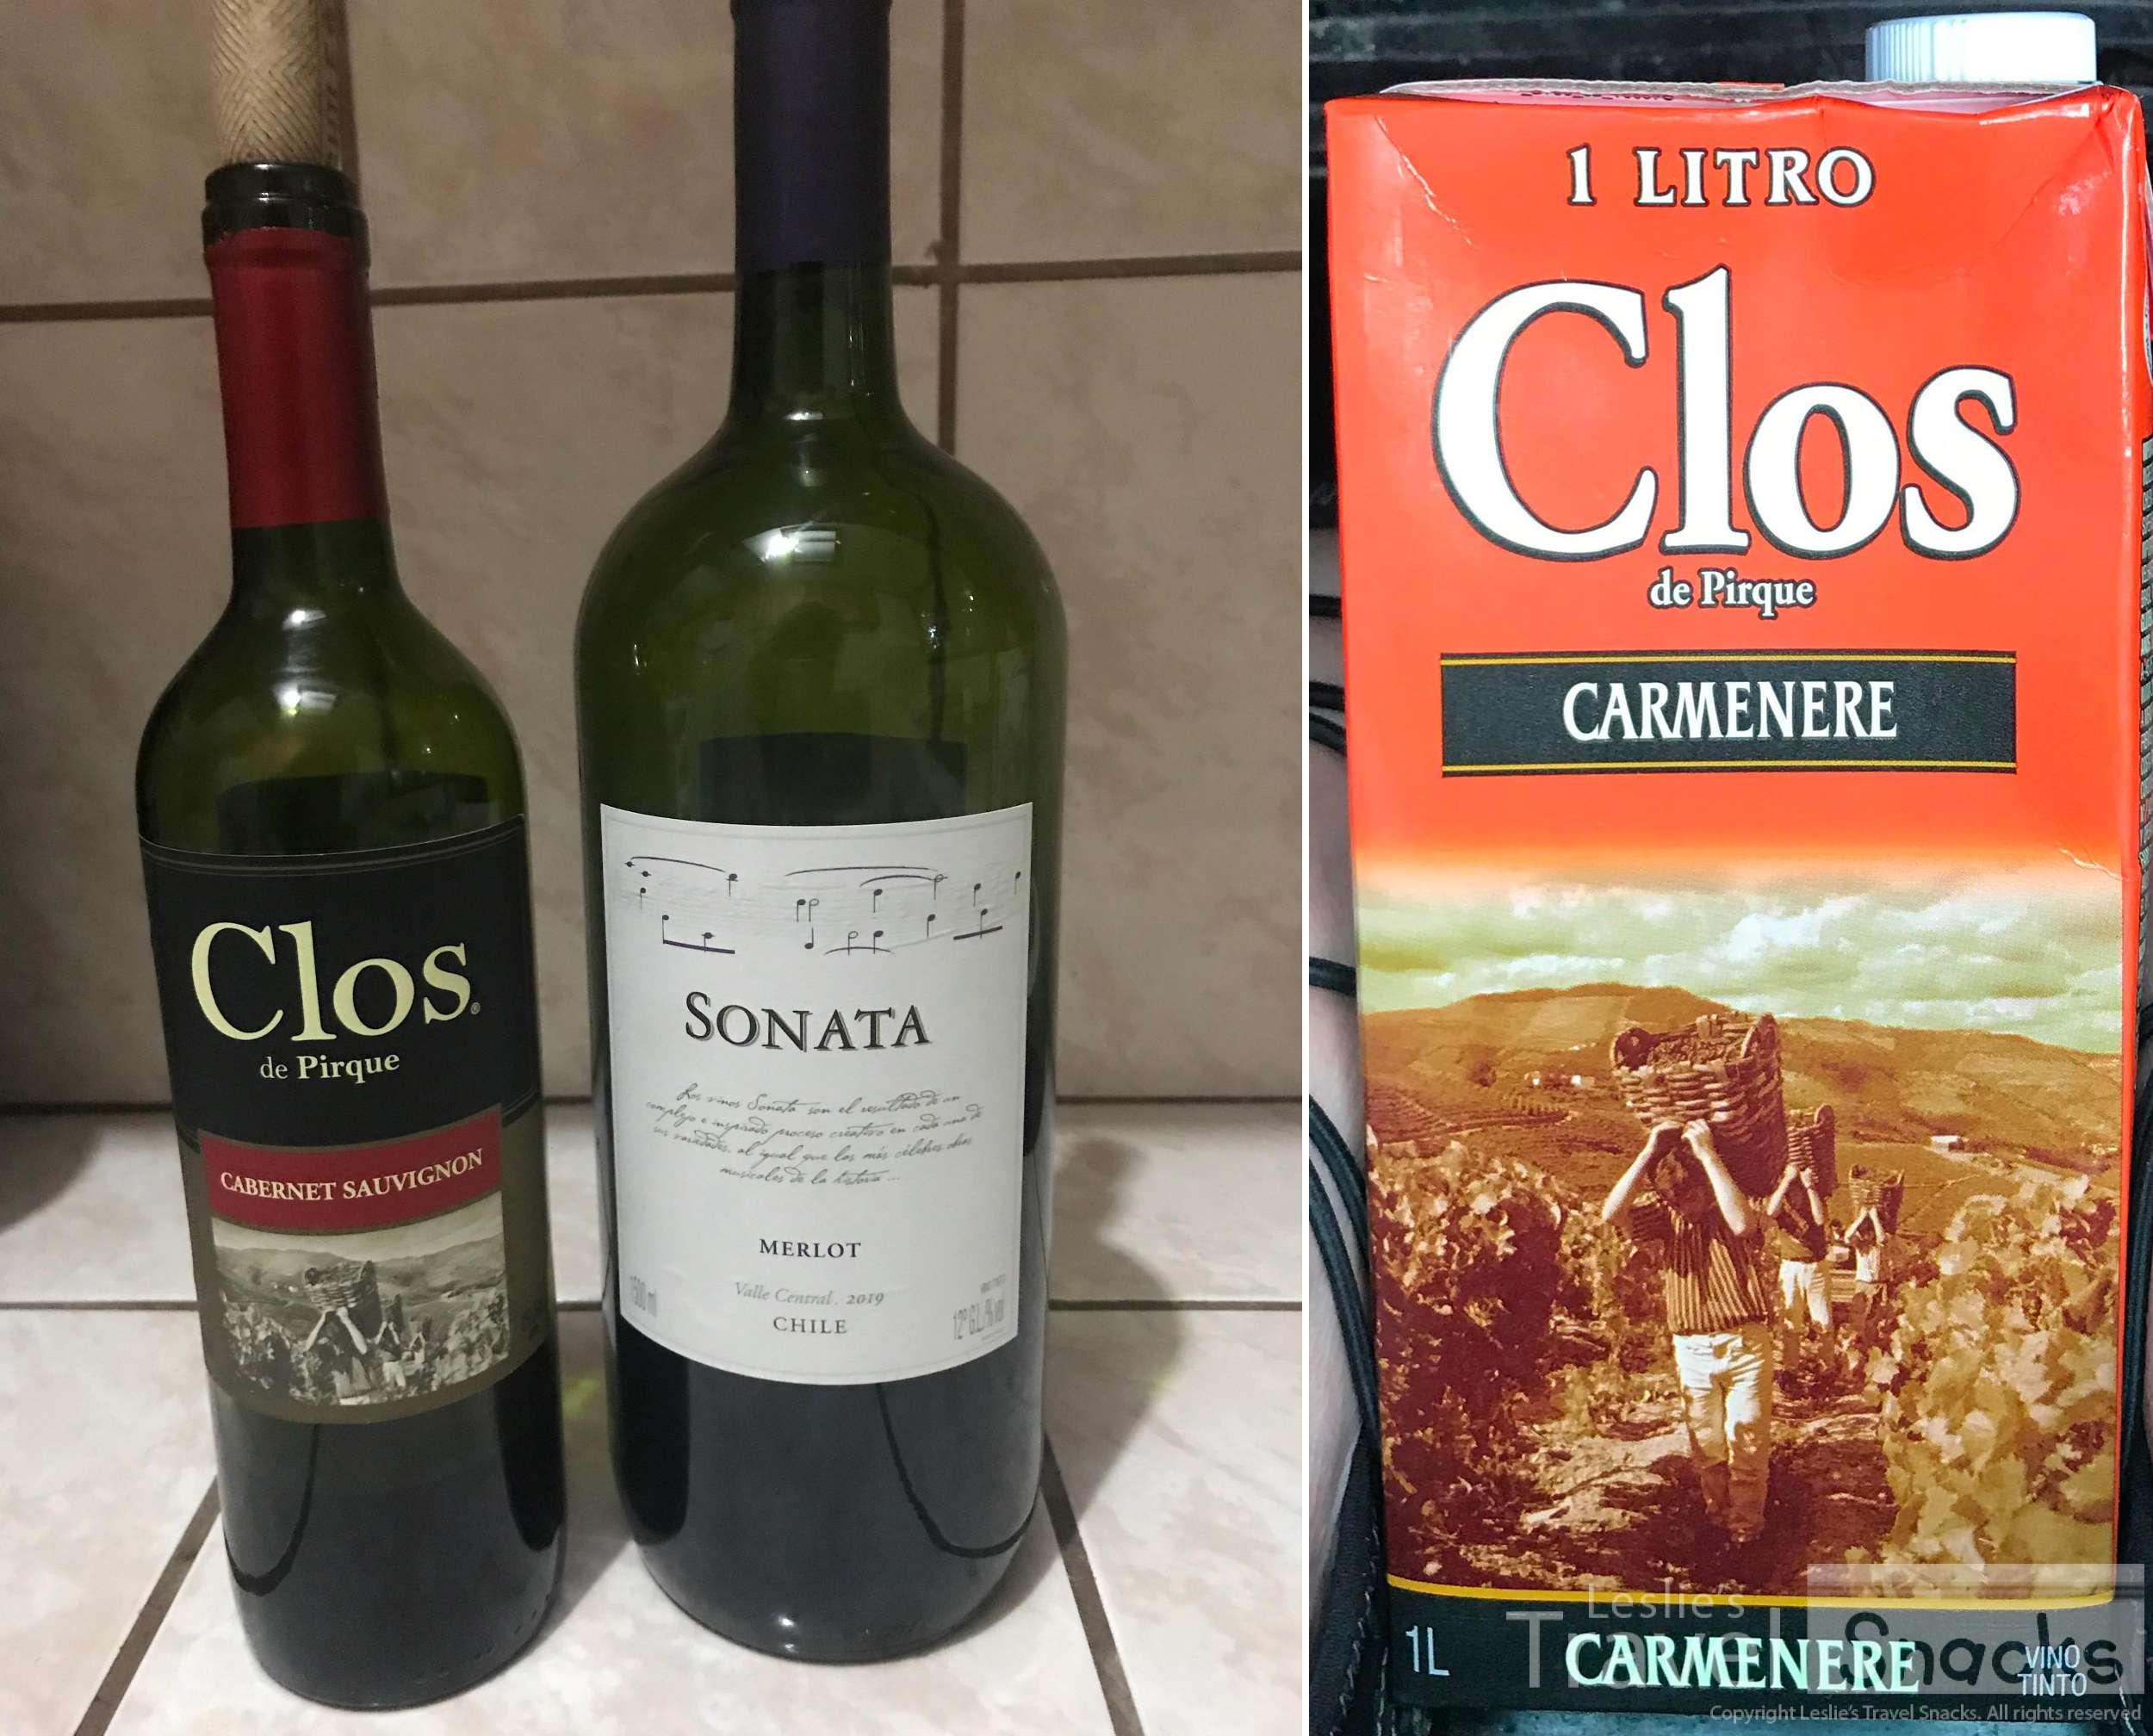 Two decent budget options at around $5/bottle.  My friend Carmenere! I had to get this in honor of Cynthia! :) It was about $7 for the liter.